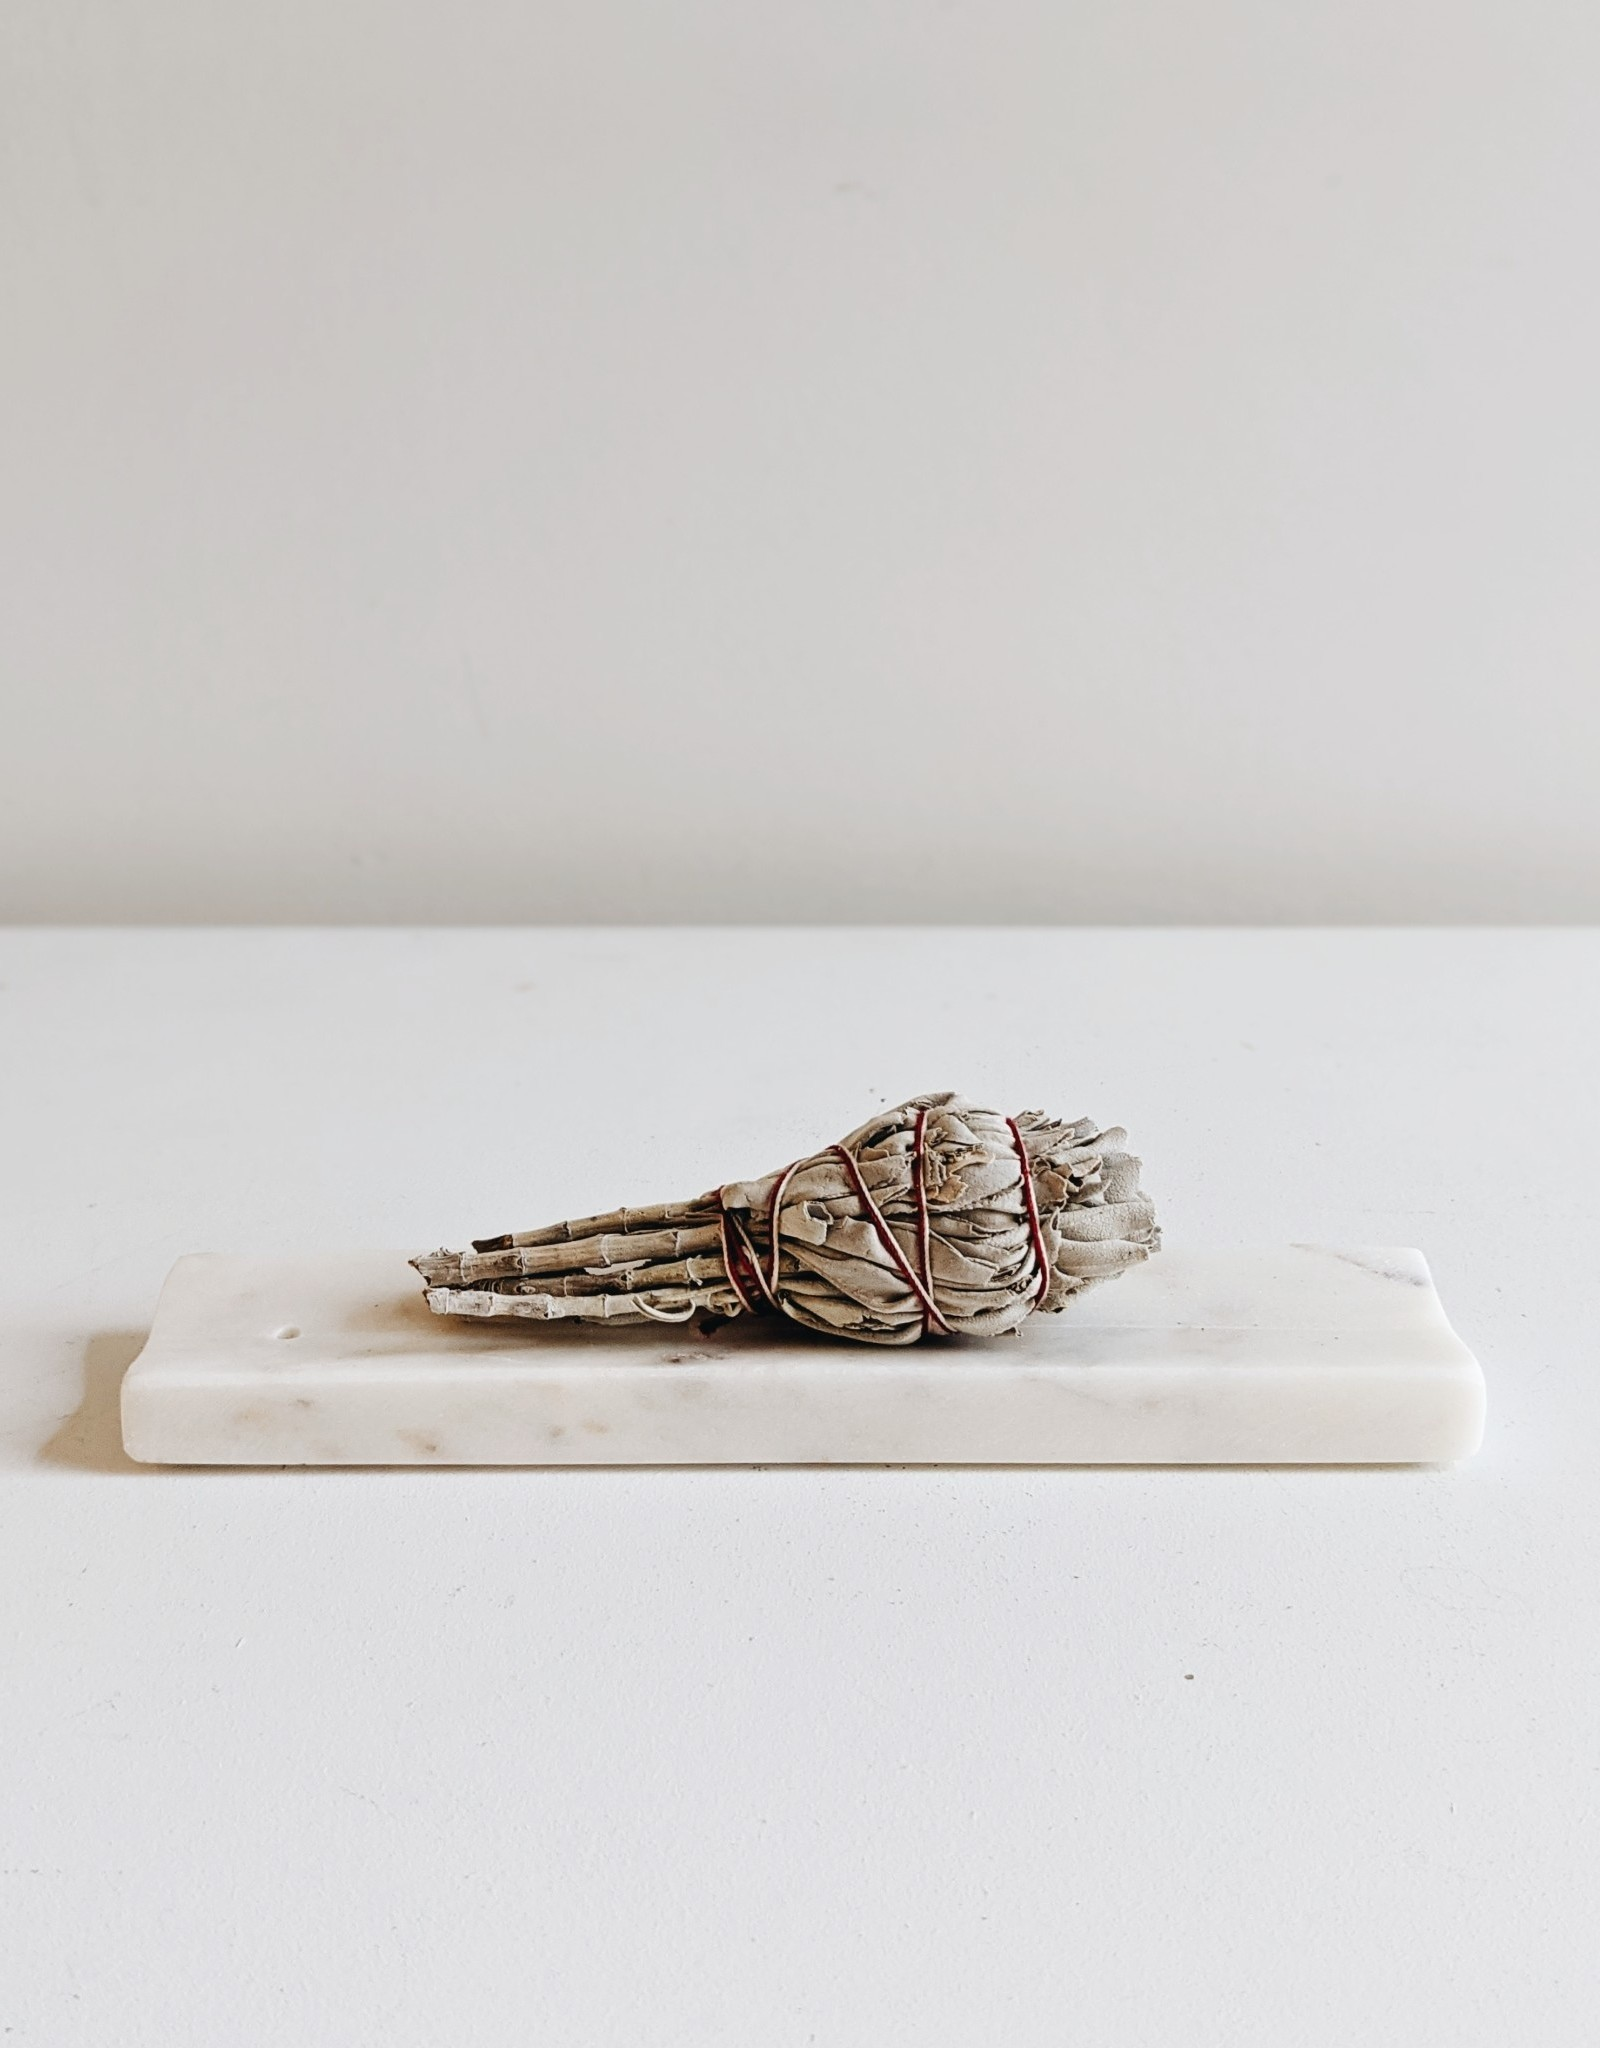 Marble Incense Holder/Tray